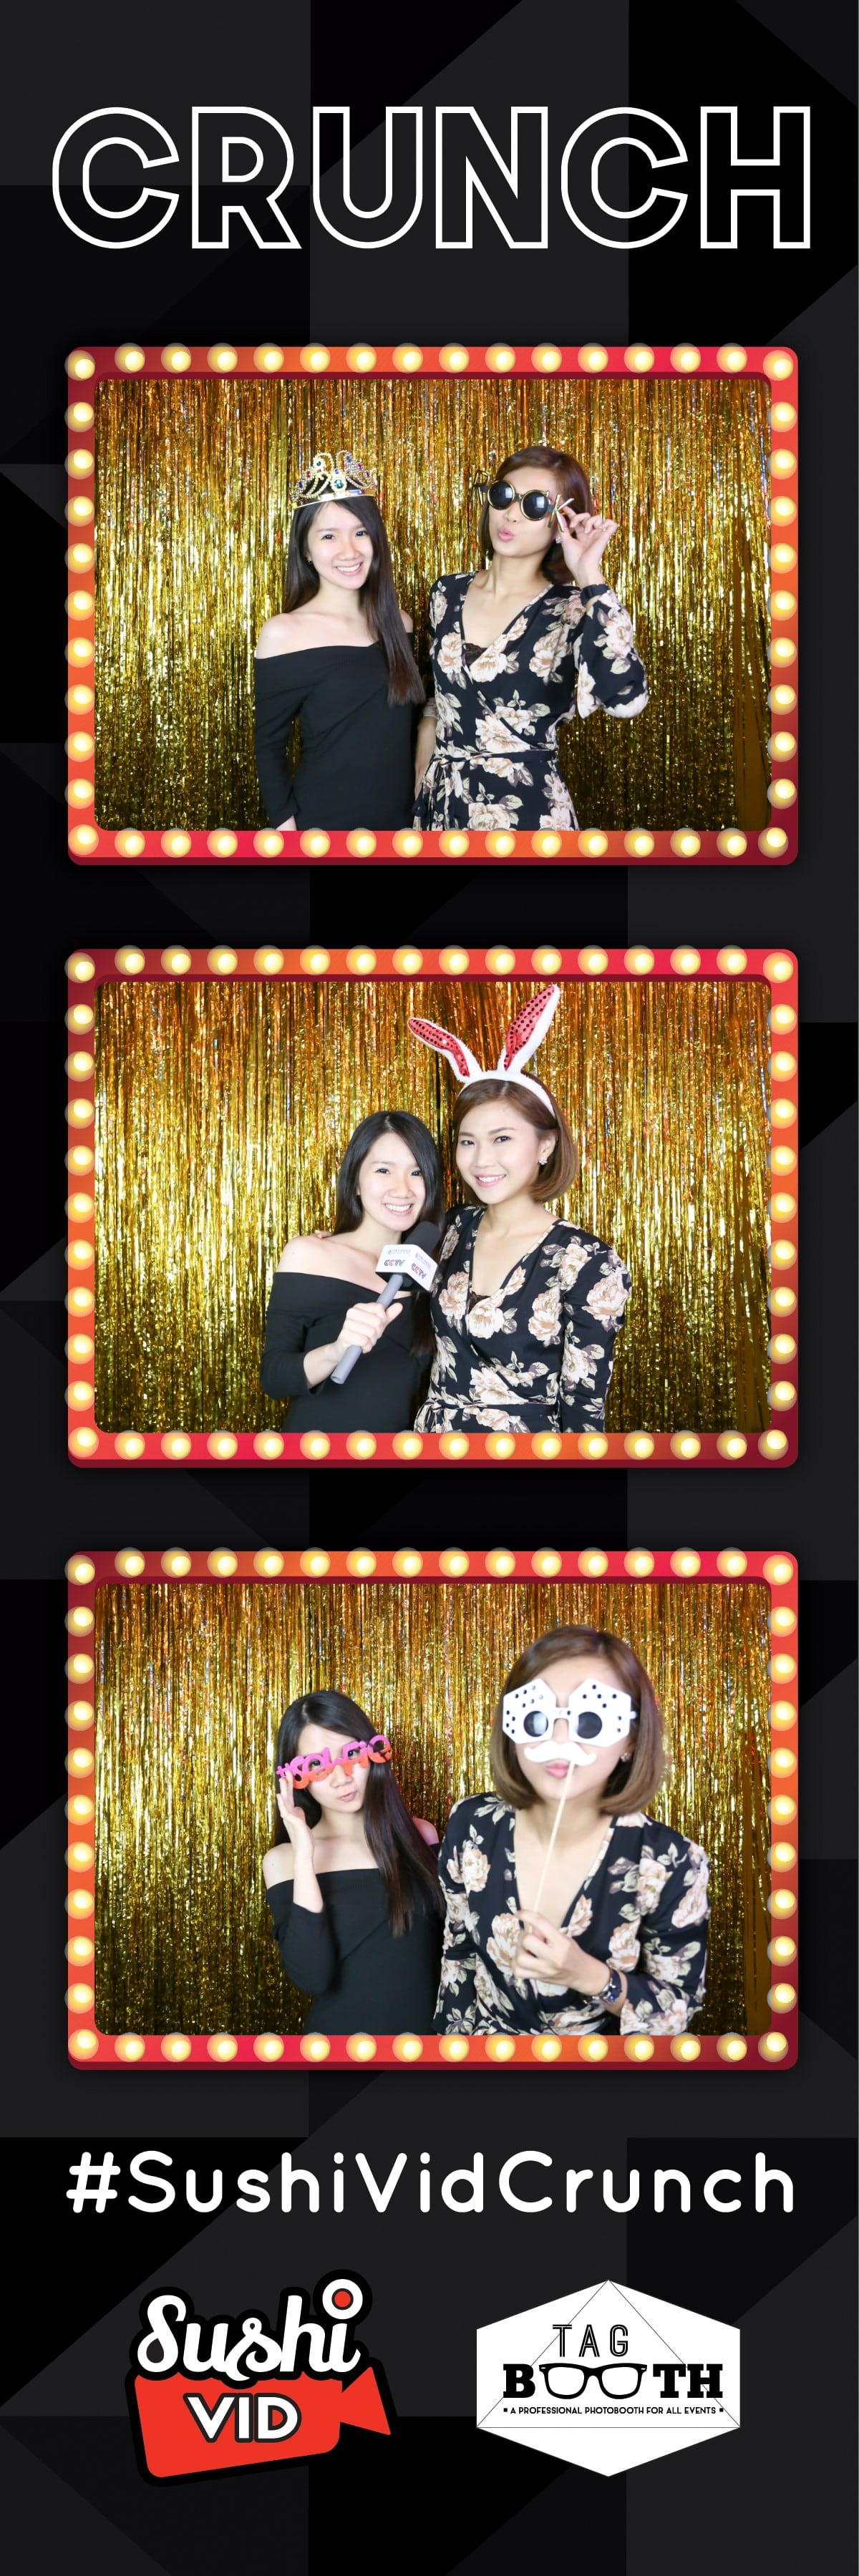 Sushivid+crunch+tagbooth1+45